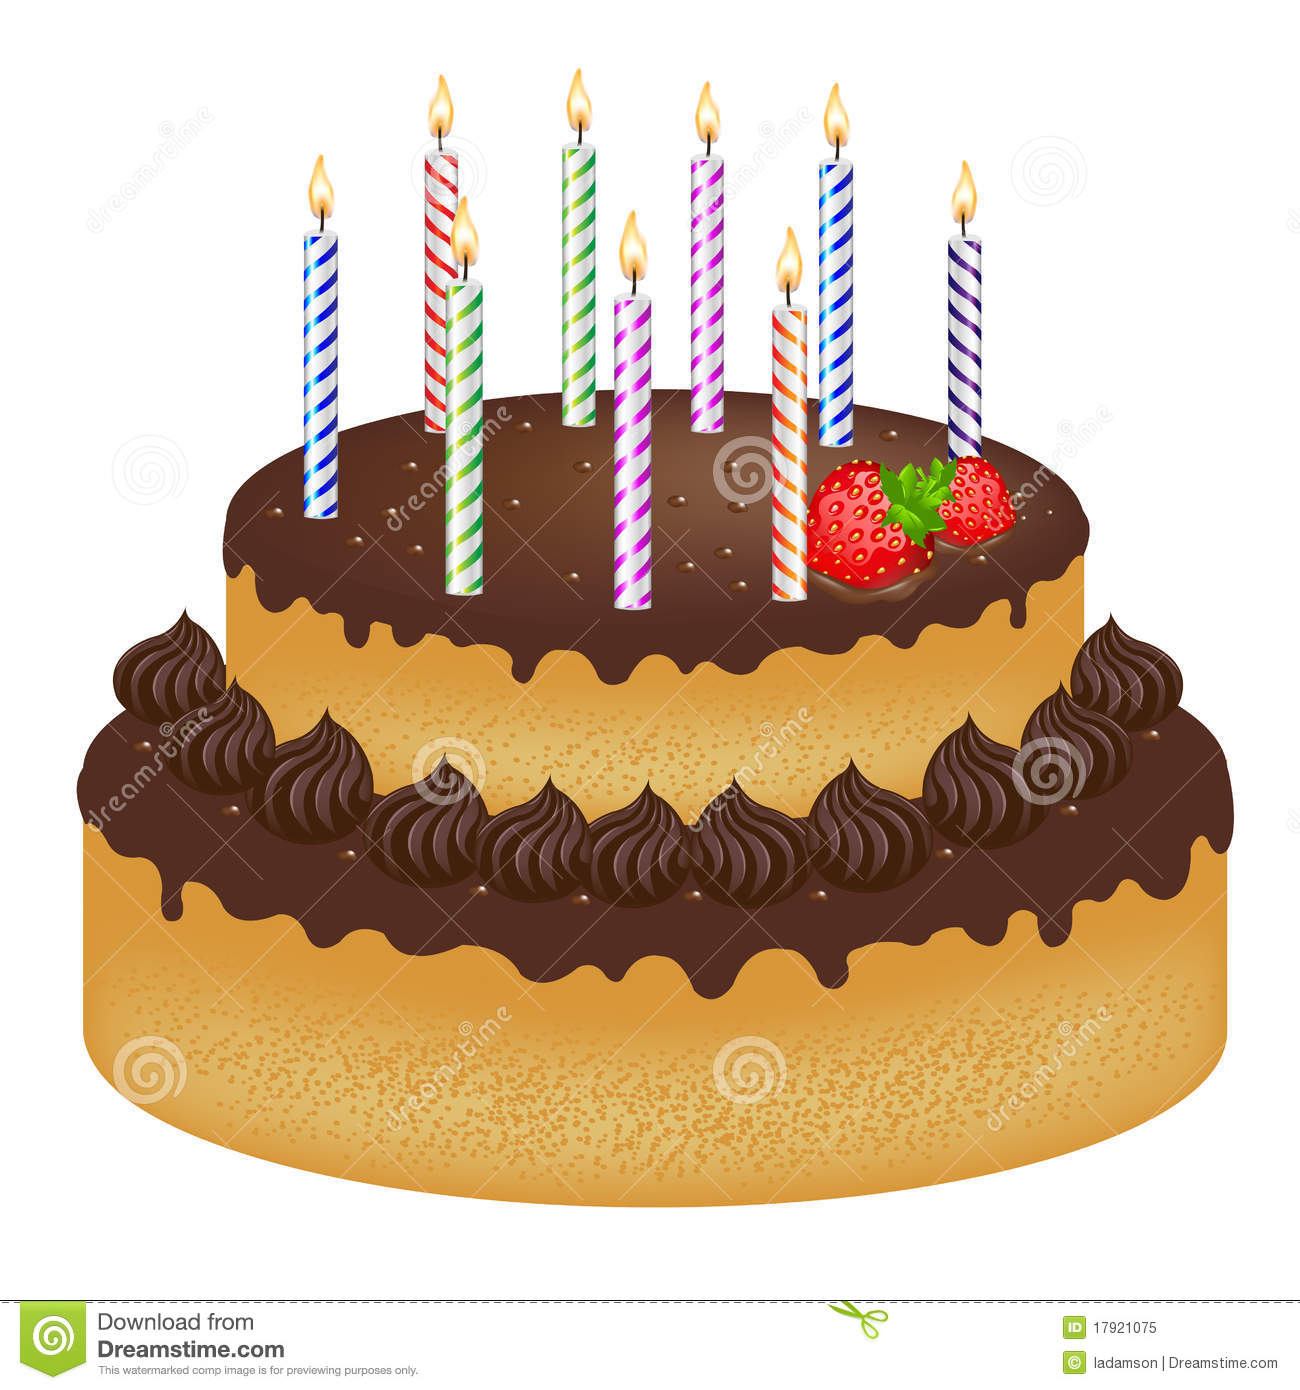 birthday cake with candles animation 15 on birthday cake with candles animation